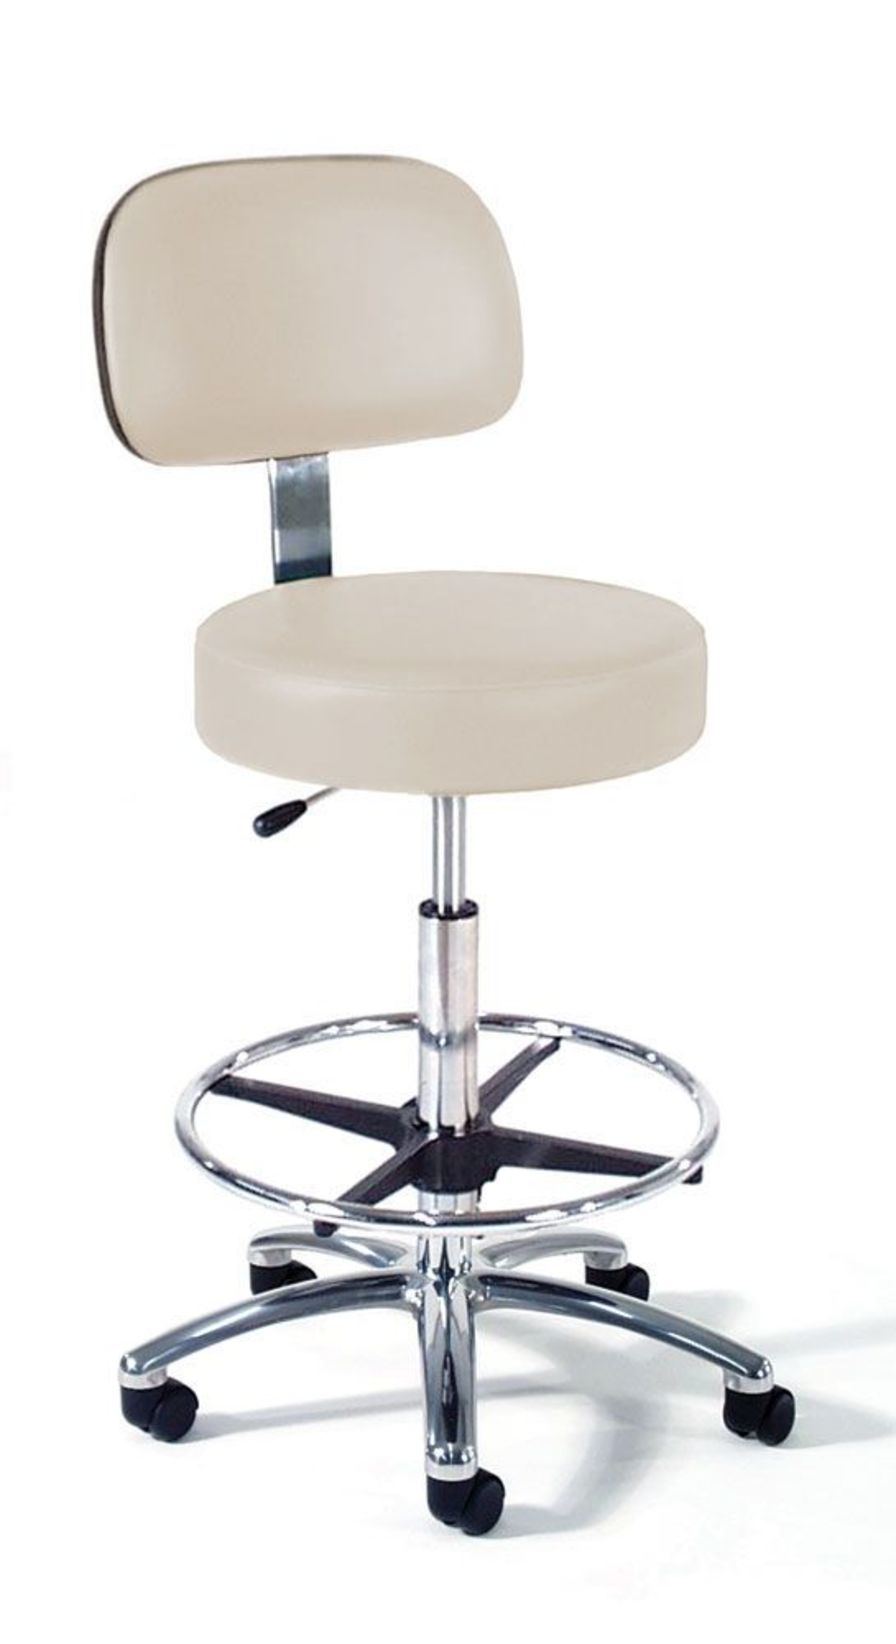 Medical stool / on casters / height-adjustable / with backrest 863 Intensa